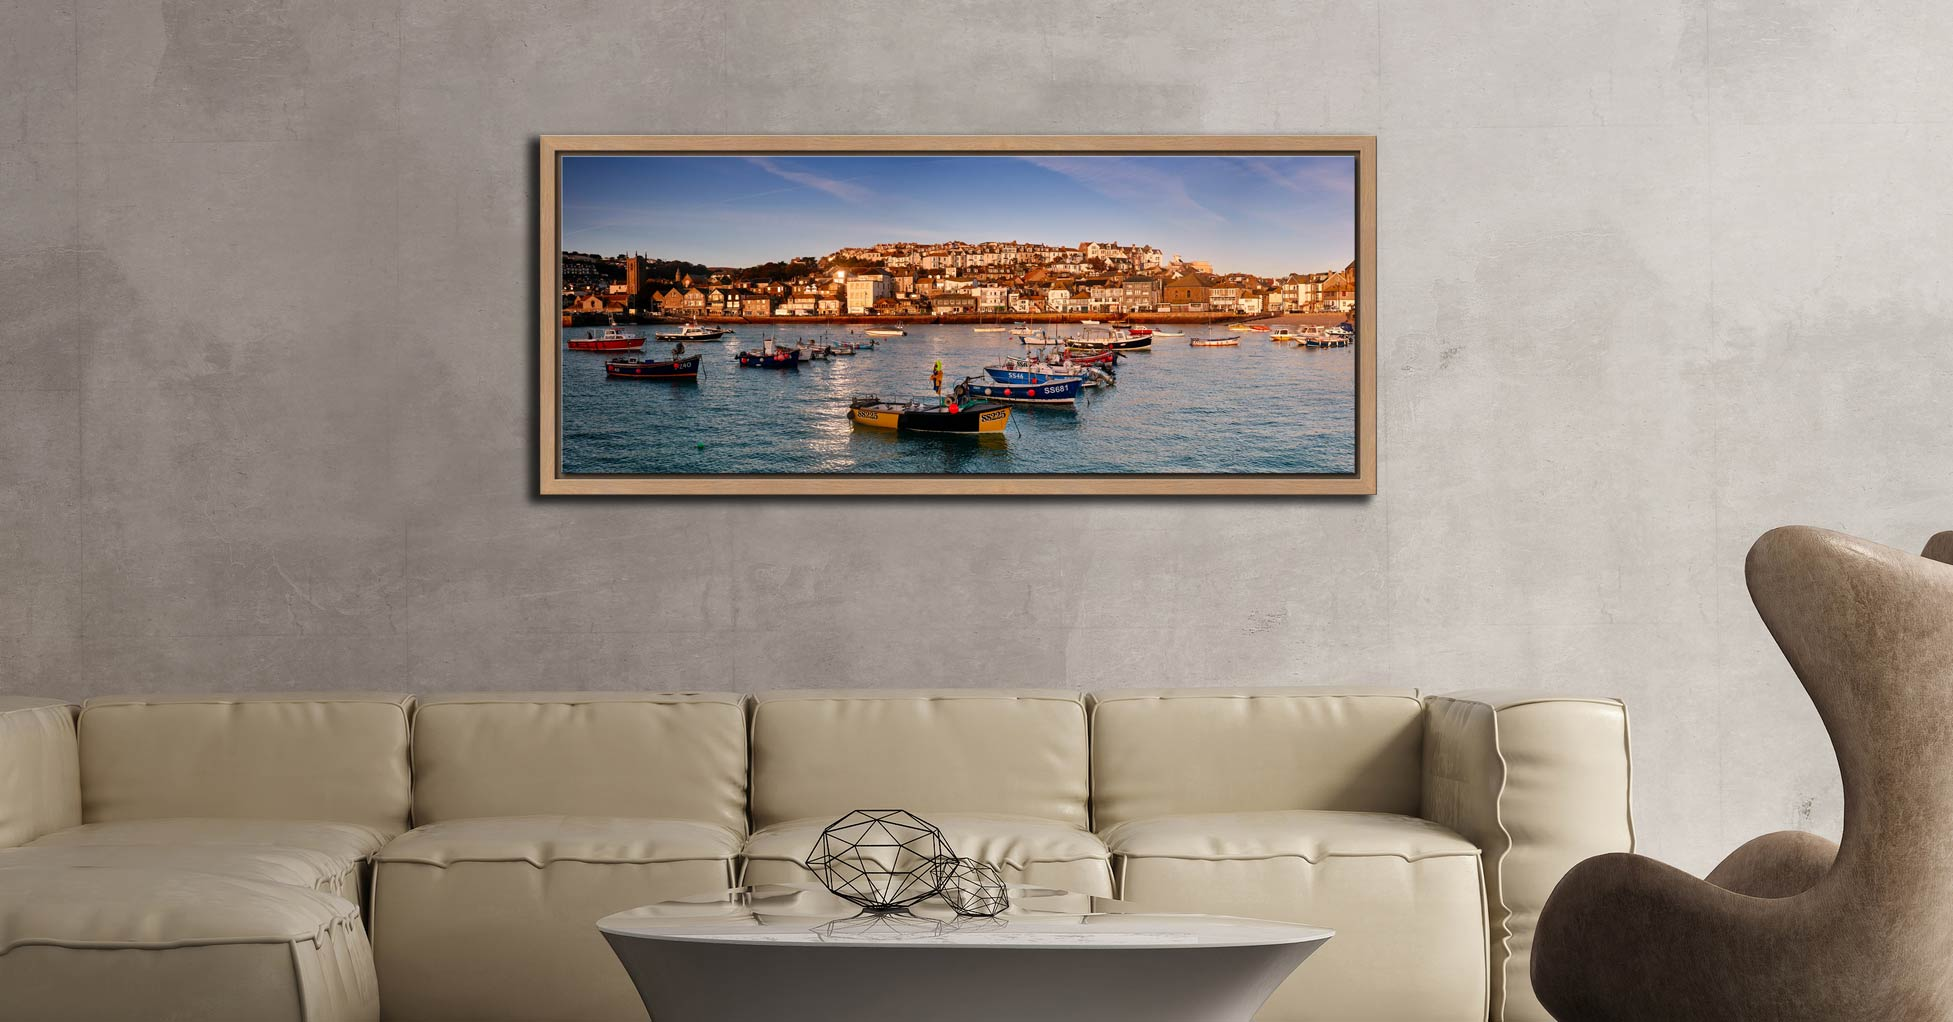 The early morning sunshine warms the boats and buildings of St Ives in Cornwall - Oak floater frame with acrylic glazing on Wall